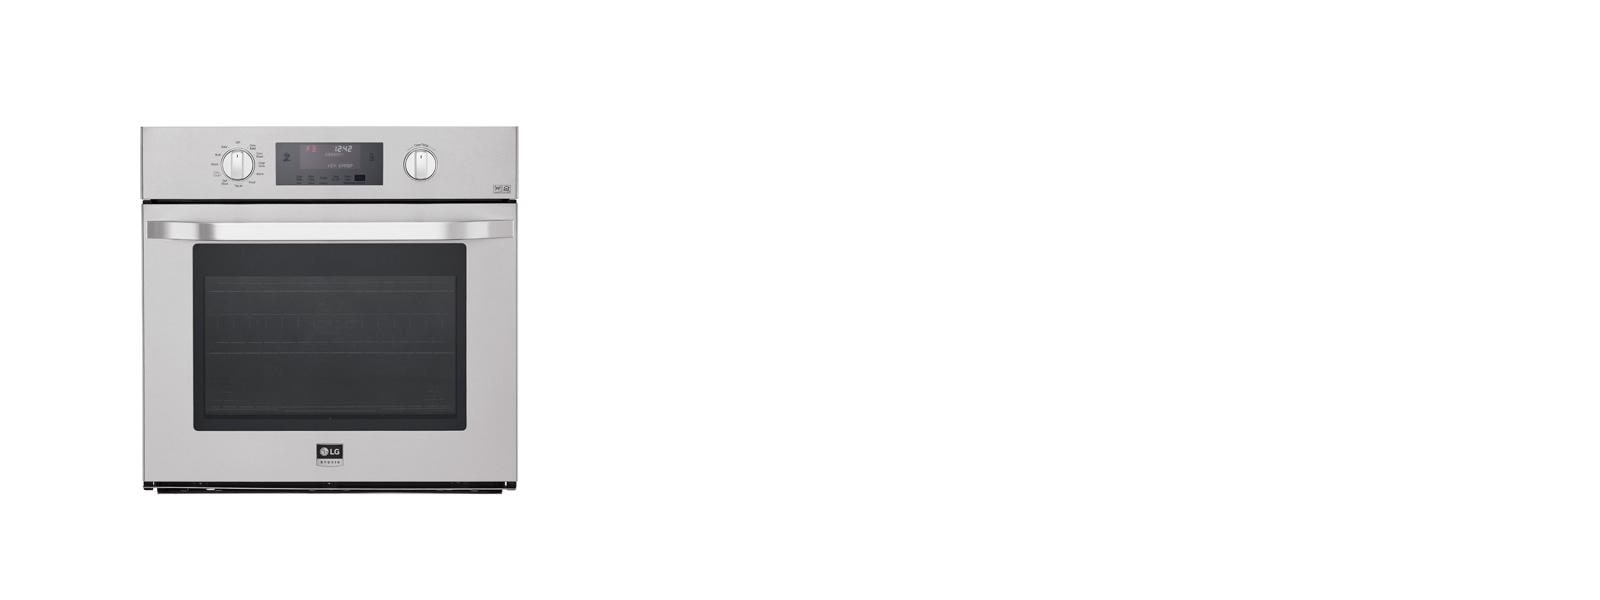 Lg lsws306st 4 7 cu ft capacity single wall oven lg usa for Perfect bake pro system